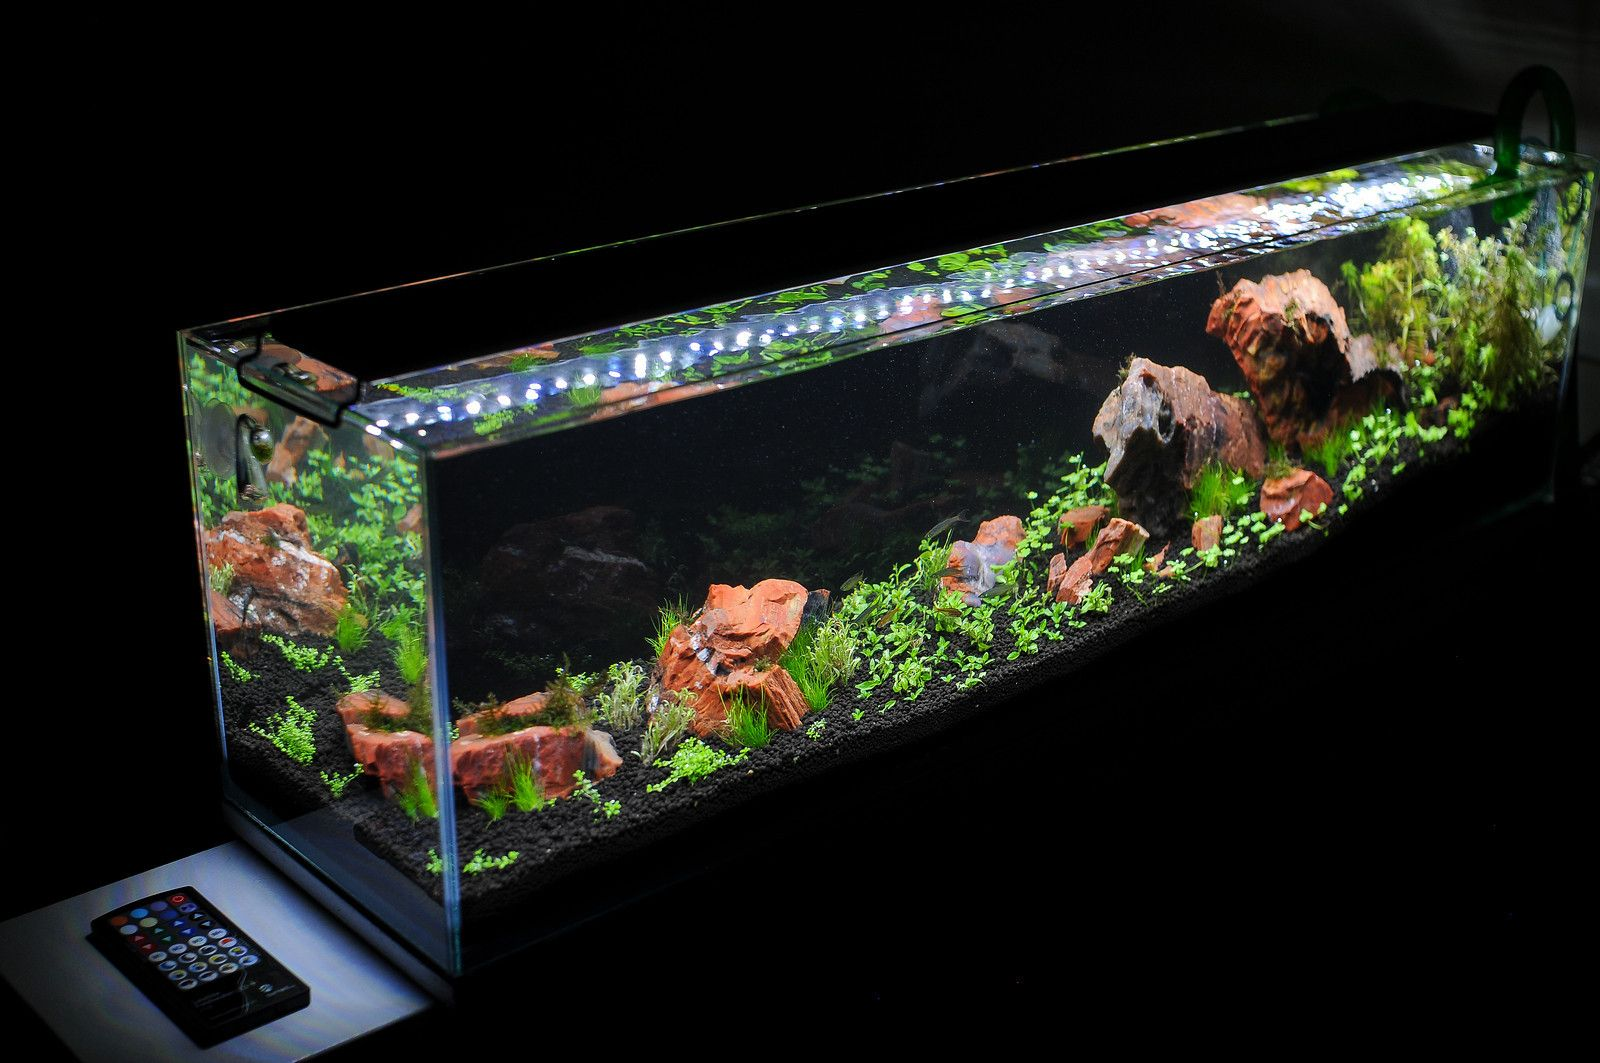 Aquarium Hobby, Aquarium Led, Aquarium Tanks, Shallow Aquarium, Aquarium  Lights, Aquarium Ideas, Betta Tanks, Fishes Aquariums, Planted Aquariums